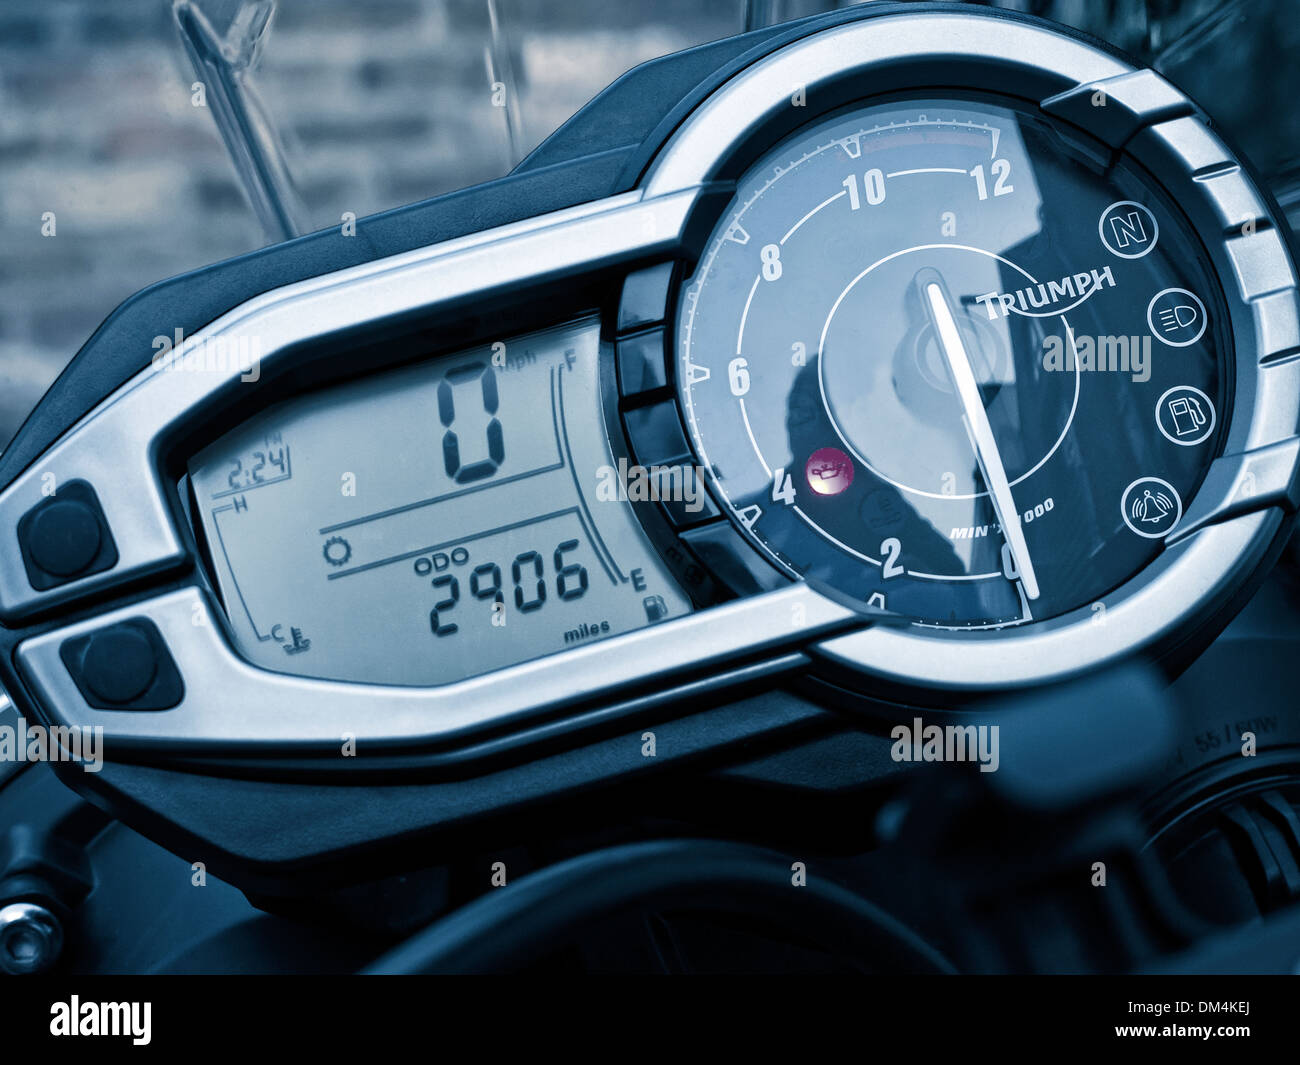 Motorcycle Instrument Panel : Instrument cluster on a triumph tiger abs motorcycle